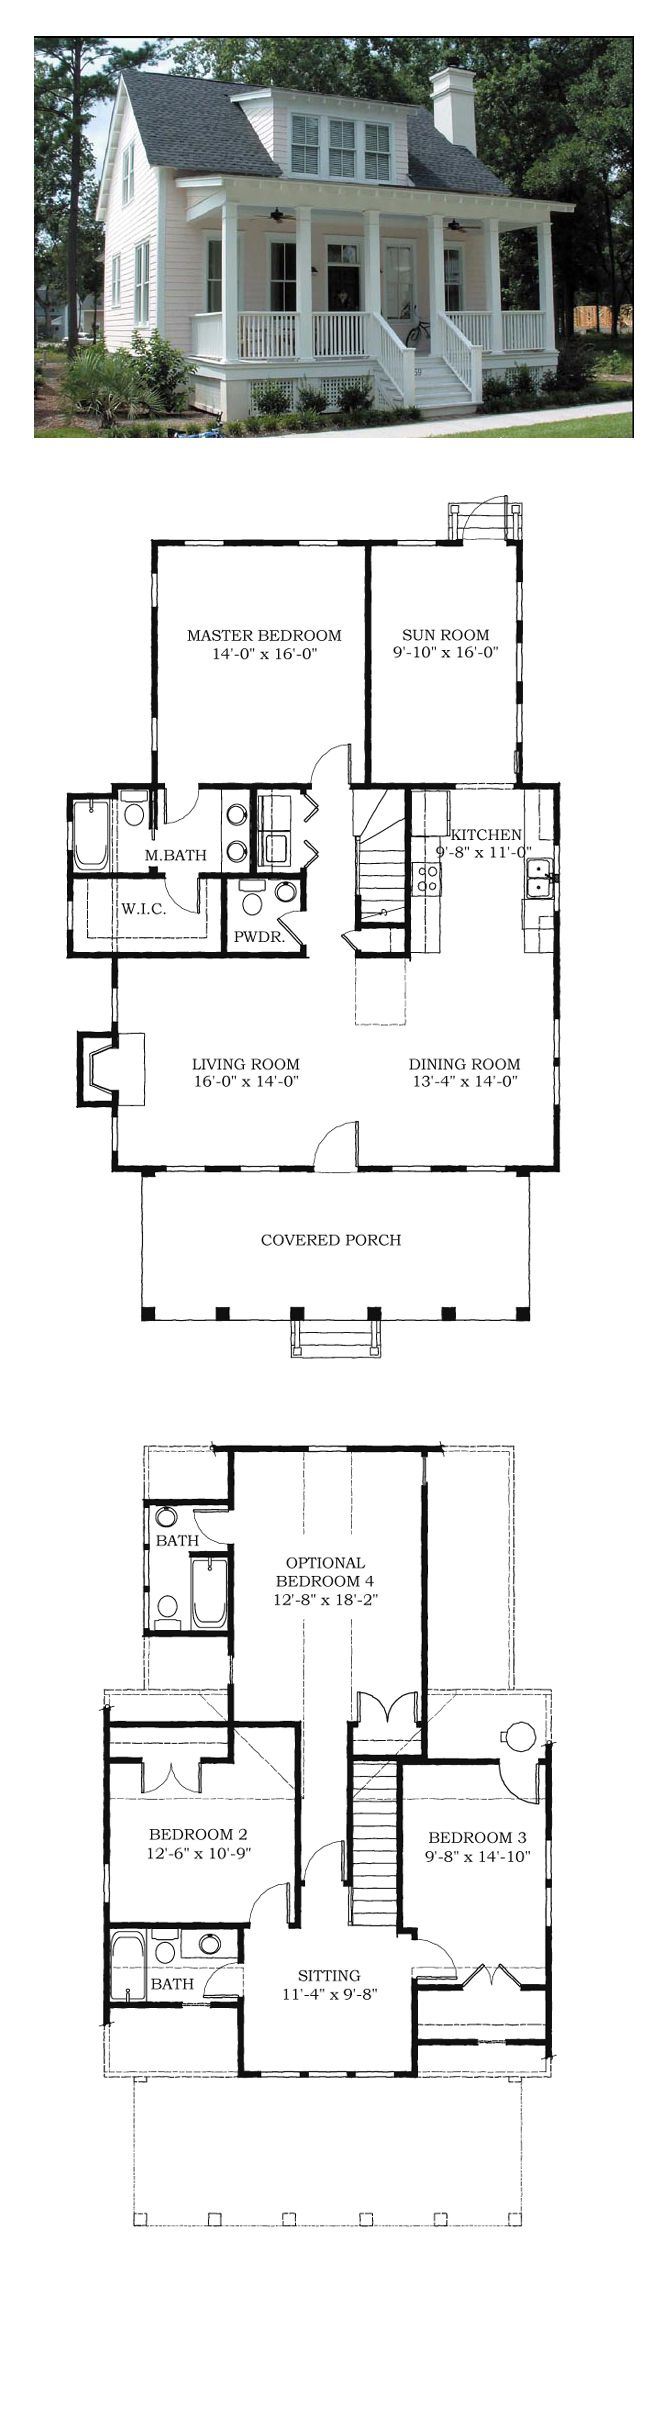 Swell 17 Best Ideas About Small House Plans On Pinterest Small House Largest Home Design Picture Inspirations Pitcheantrous